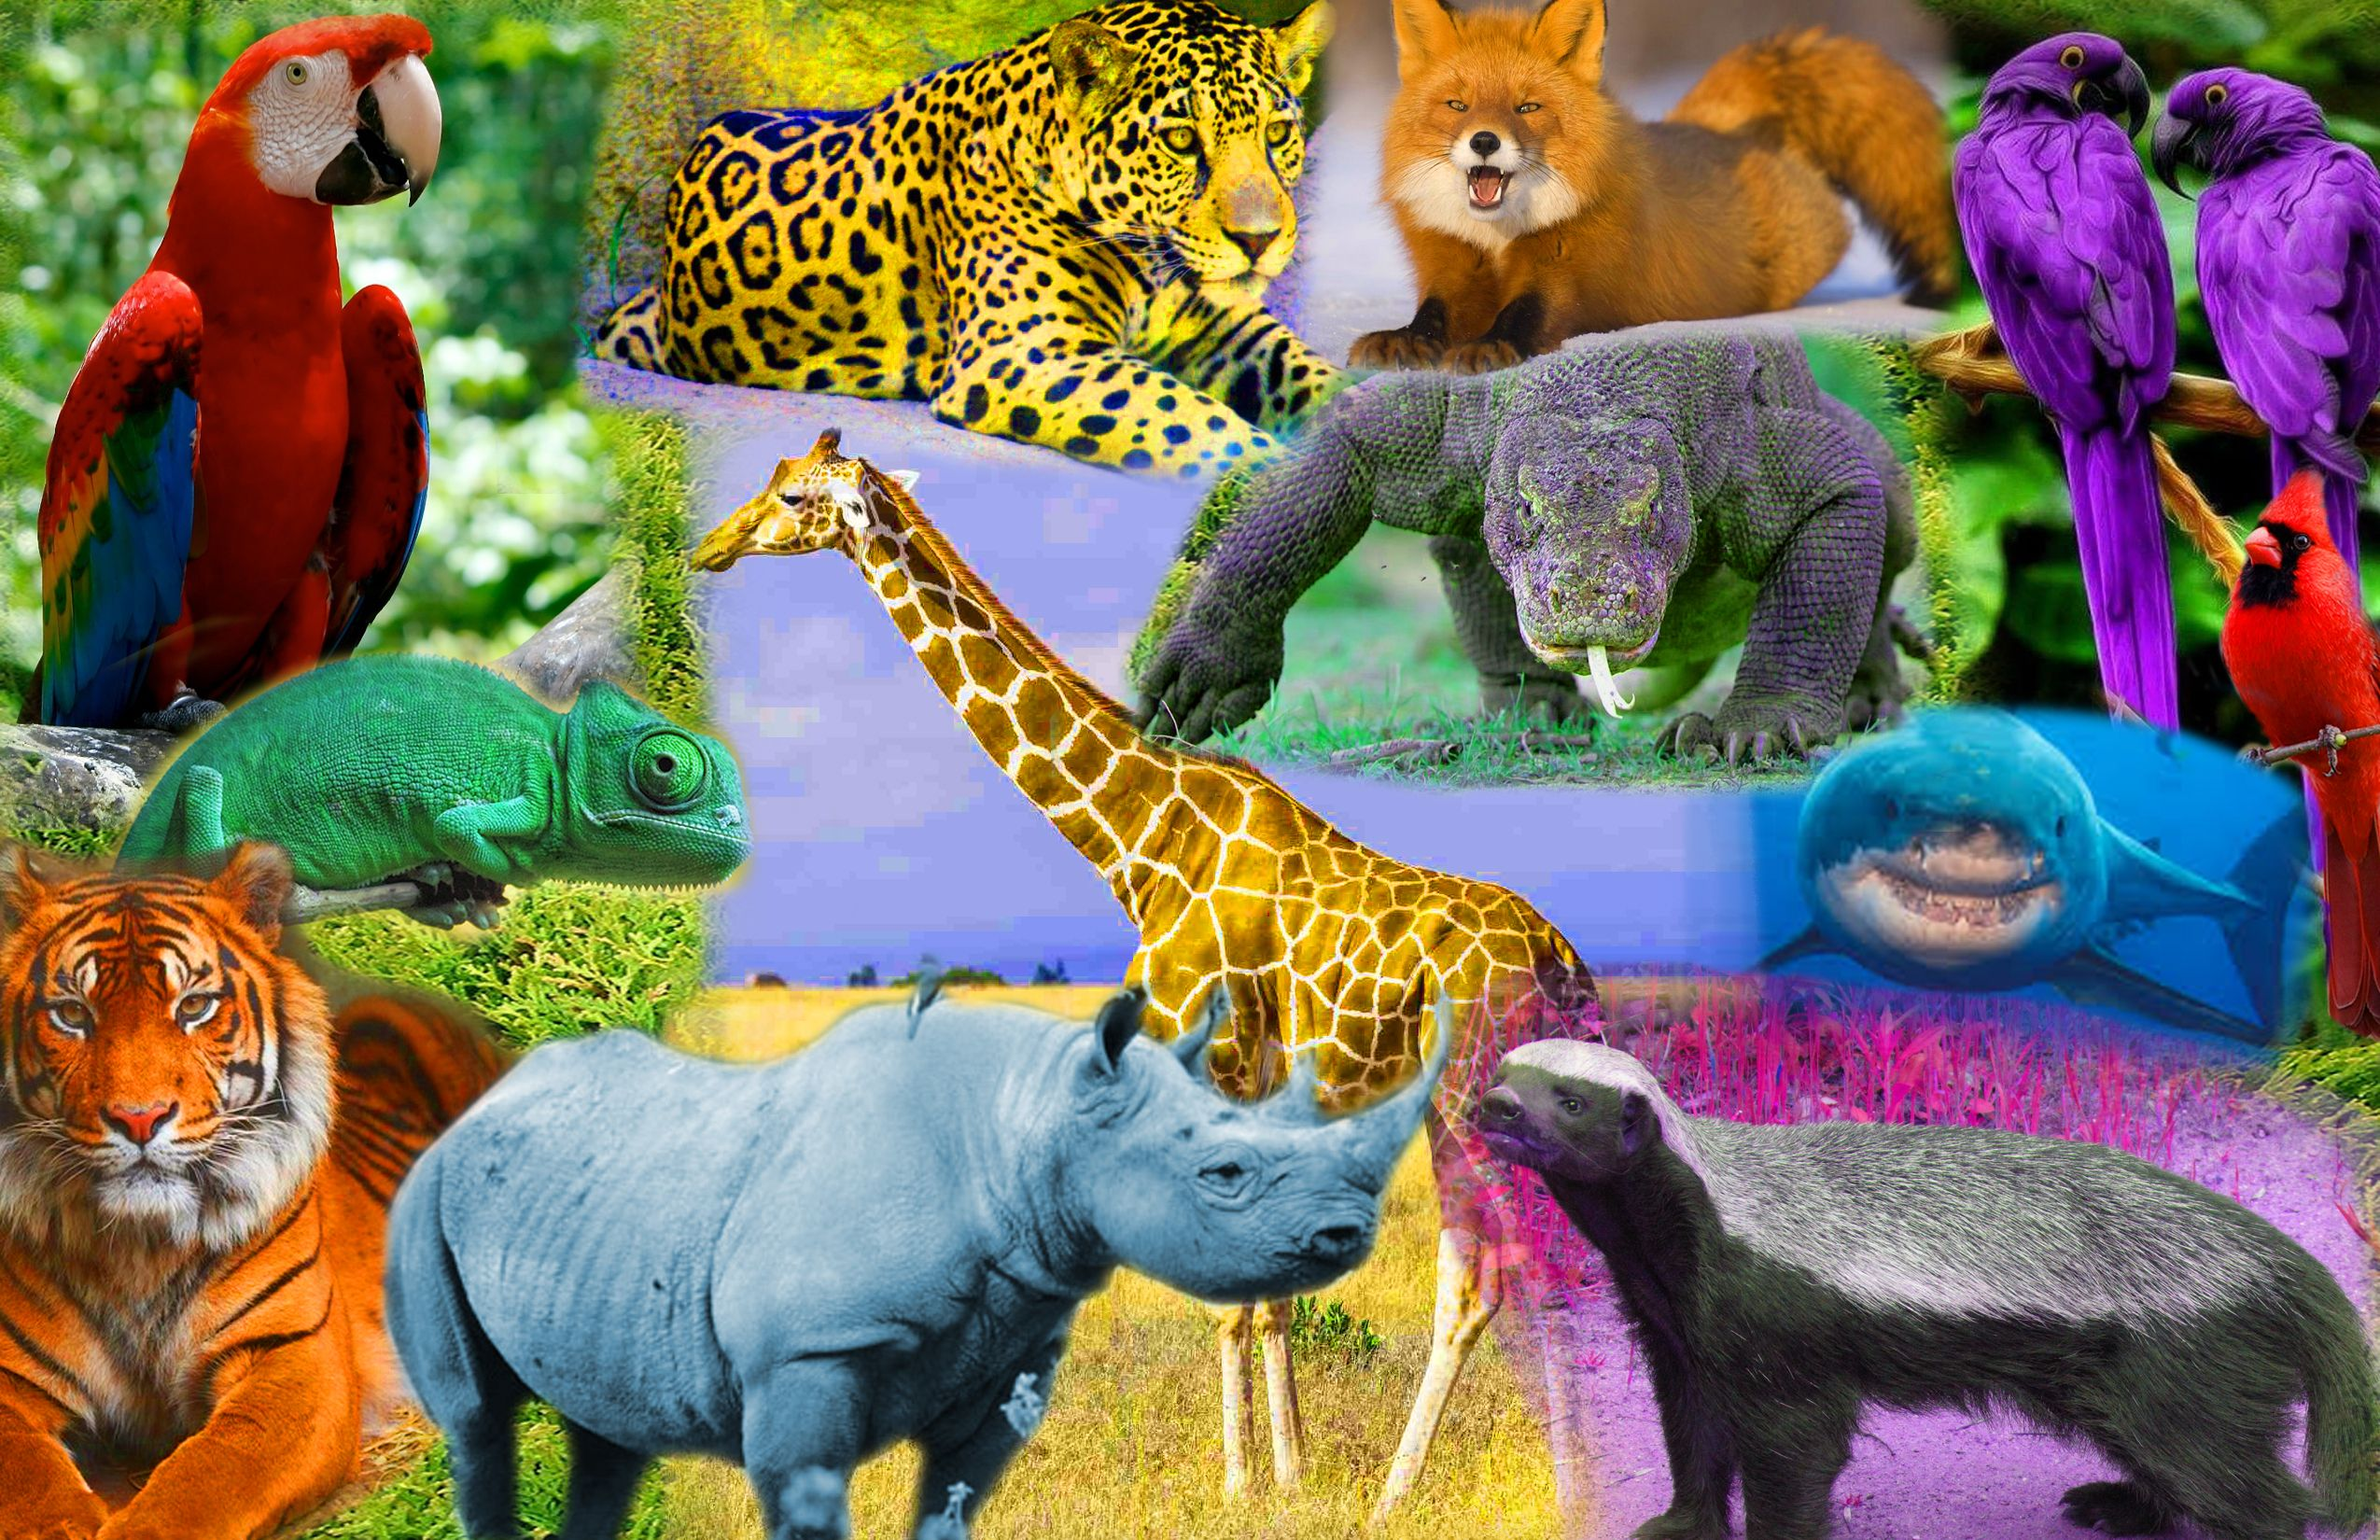 A Collage Of Different Animals With The Different Primary And Secondary Colors Primary And Secondary Colors Animals Dinosaur Stuffed Animal